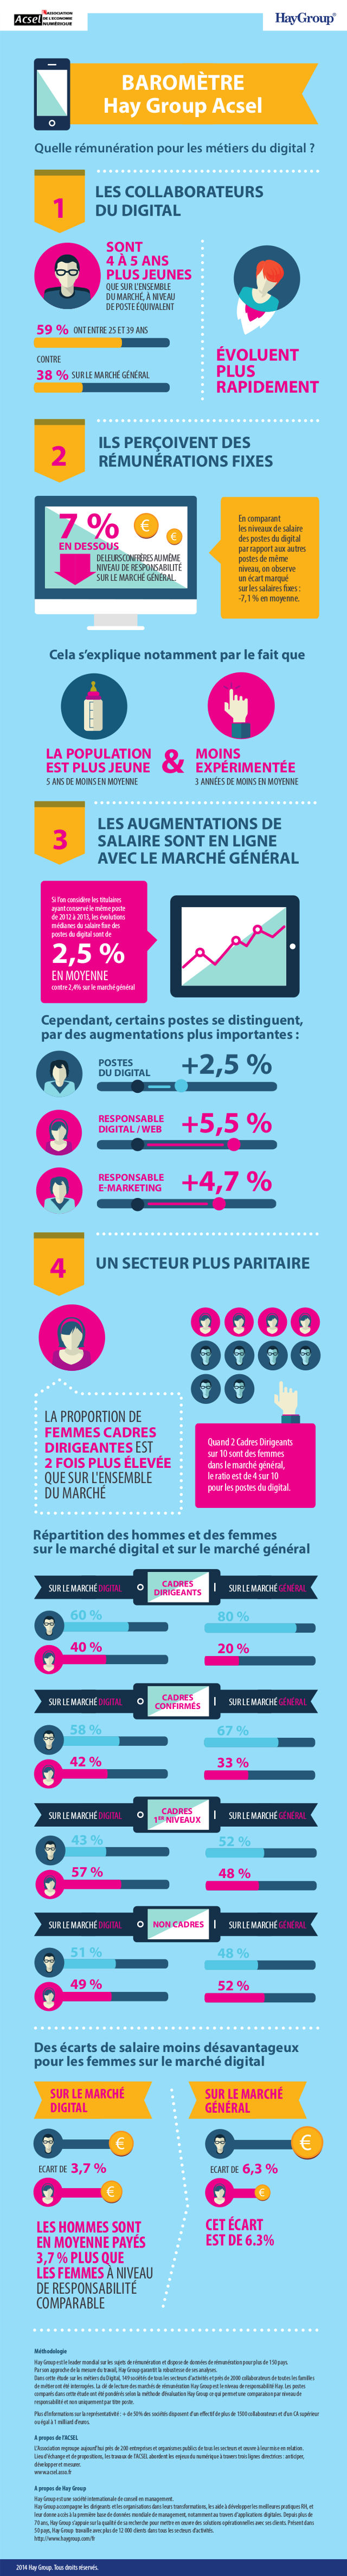 PM-Infographie-digital-v9